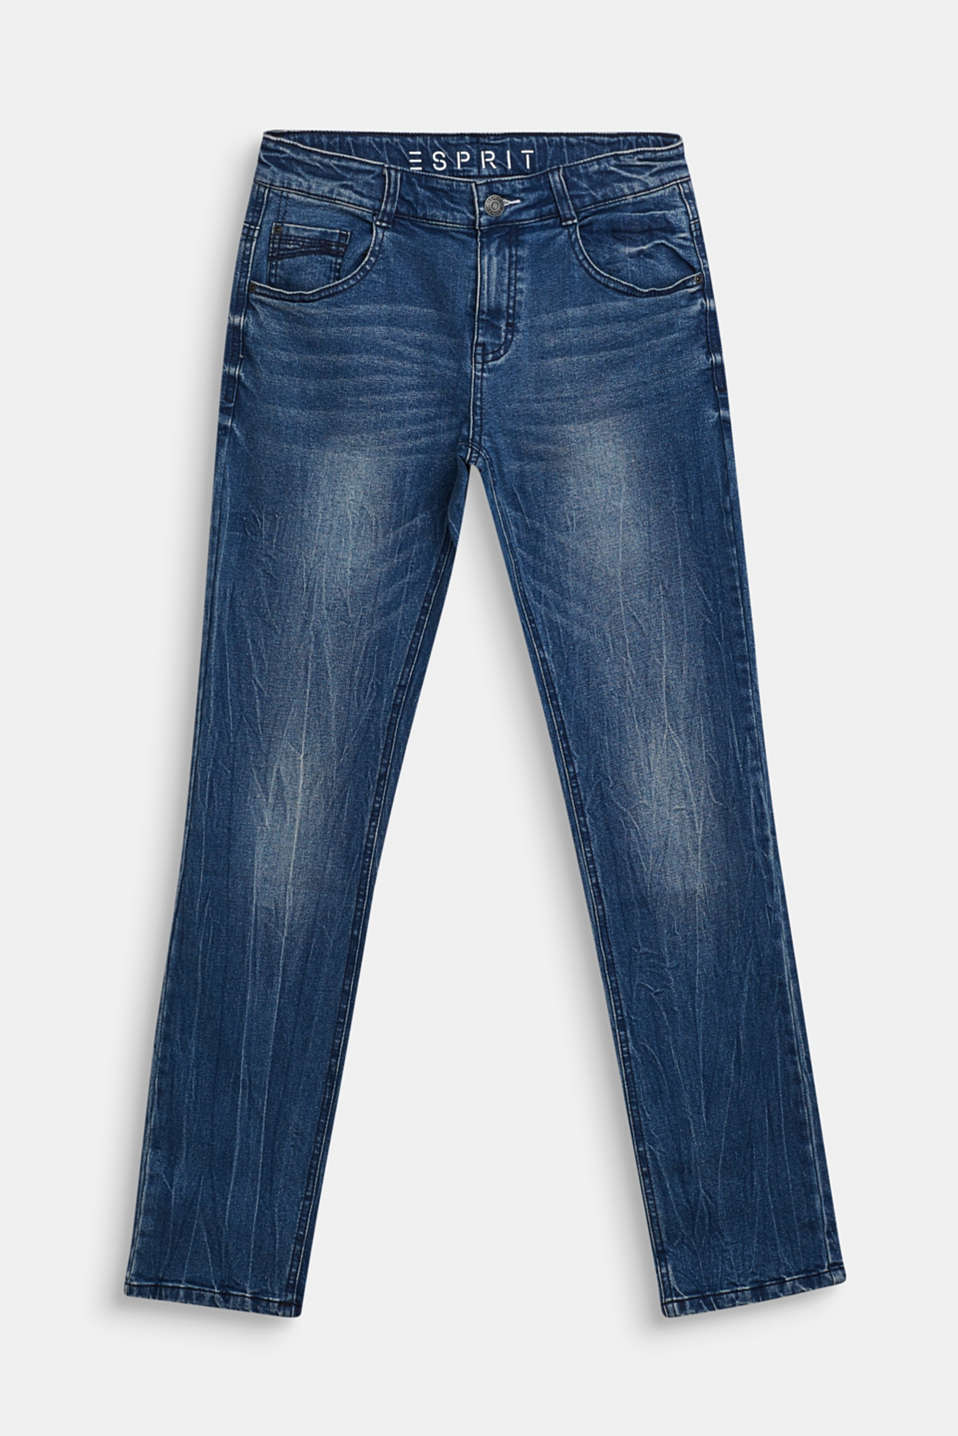 Esprit - Jeans stretch con lato interno morbido